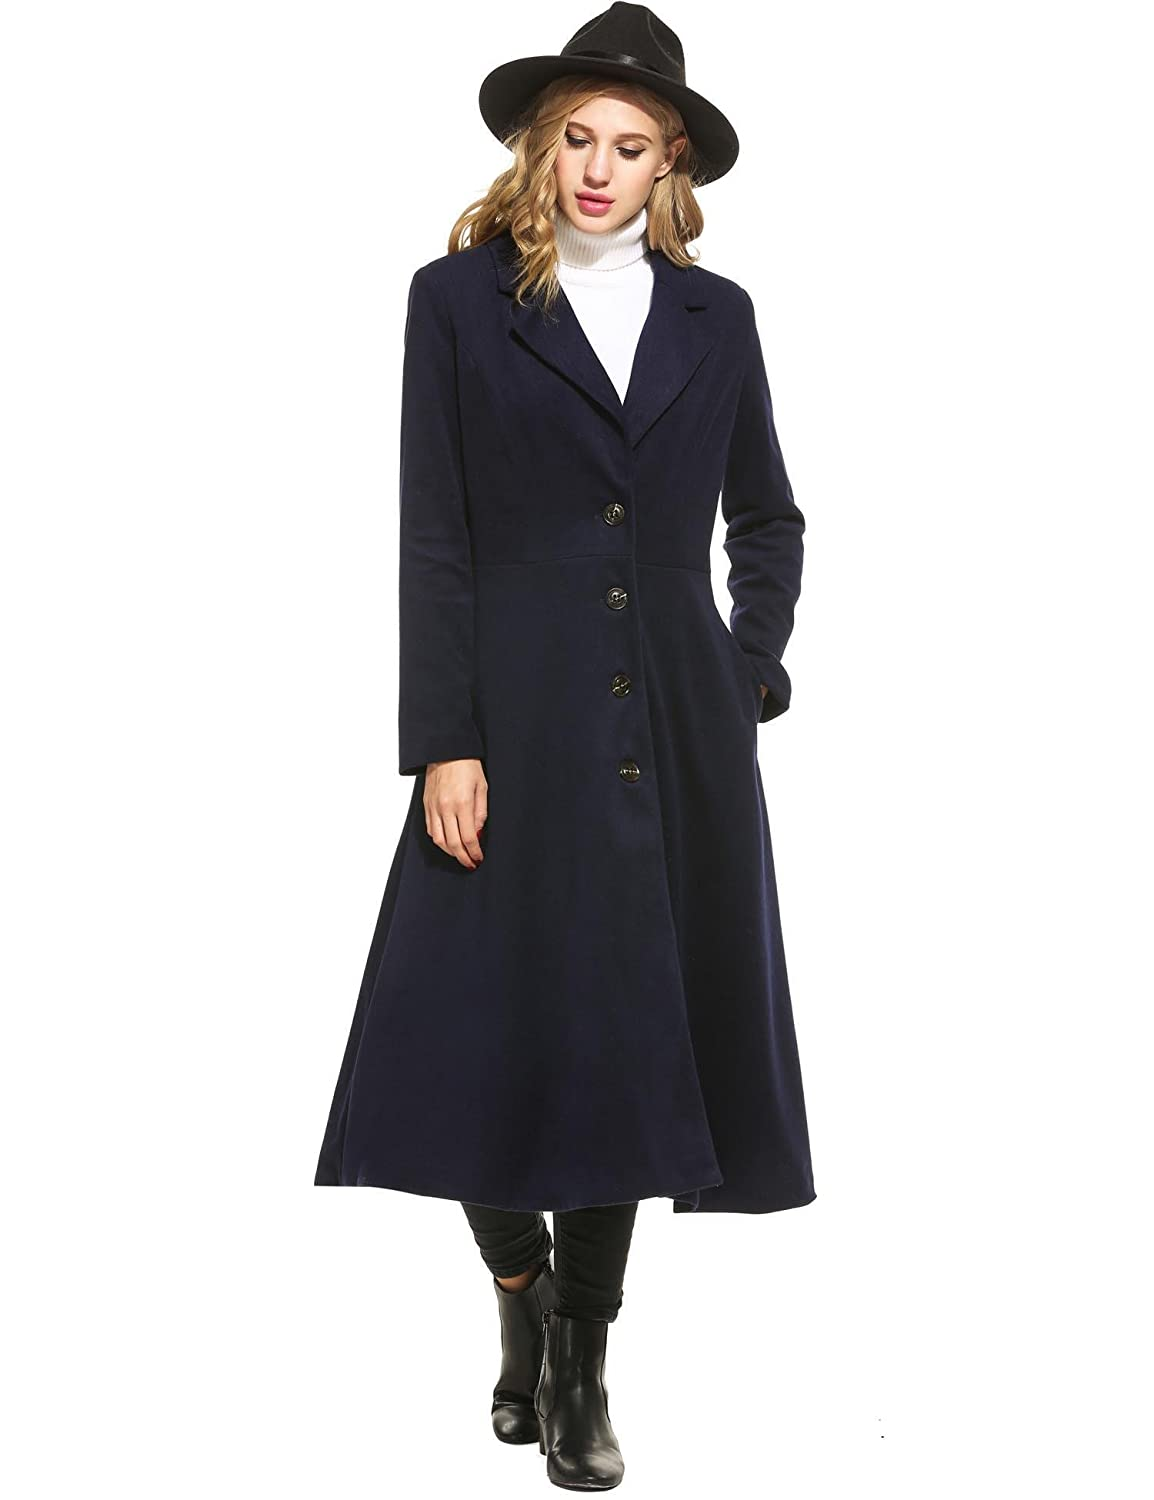 70s Jackets, Furs, Vests, Ponchos Mofavor Women Long Trench Coat Single Breasted Casual Swing Coat Overcoat Wool Pea Coat $55.89 AT vintagedancer.com